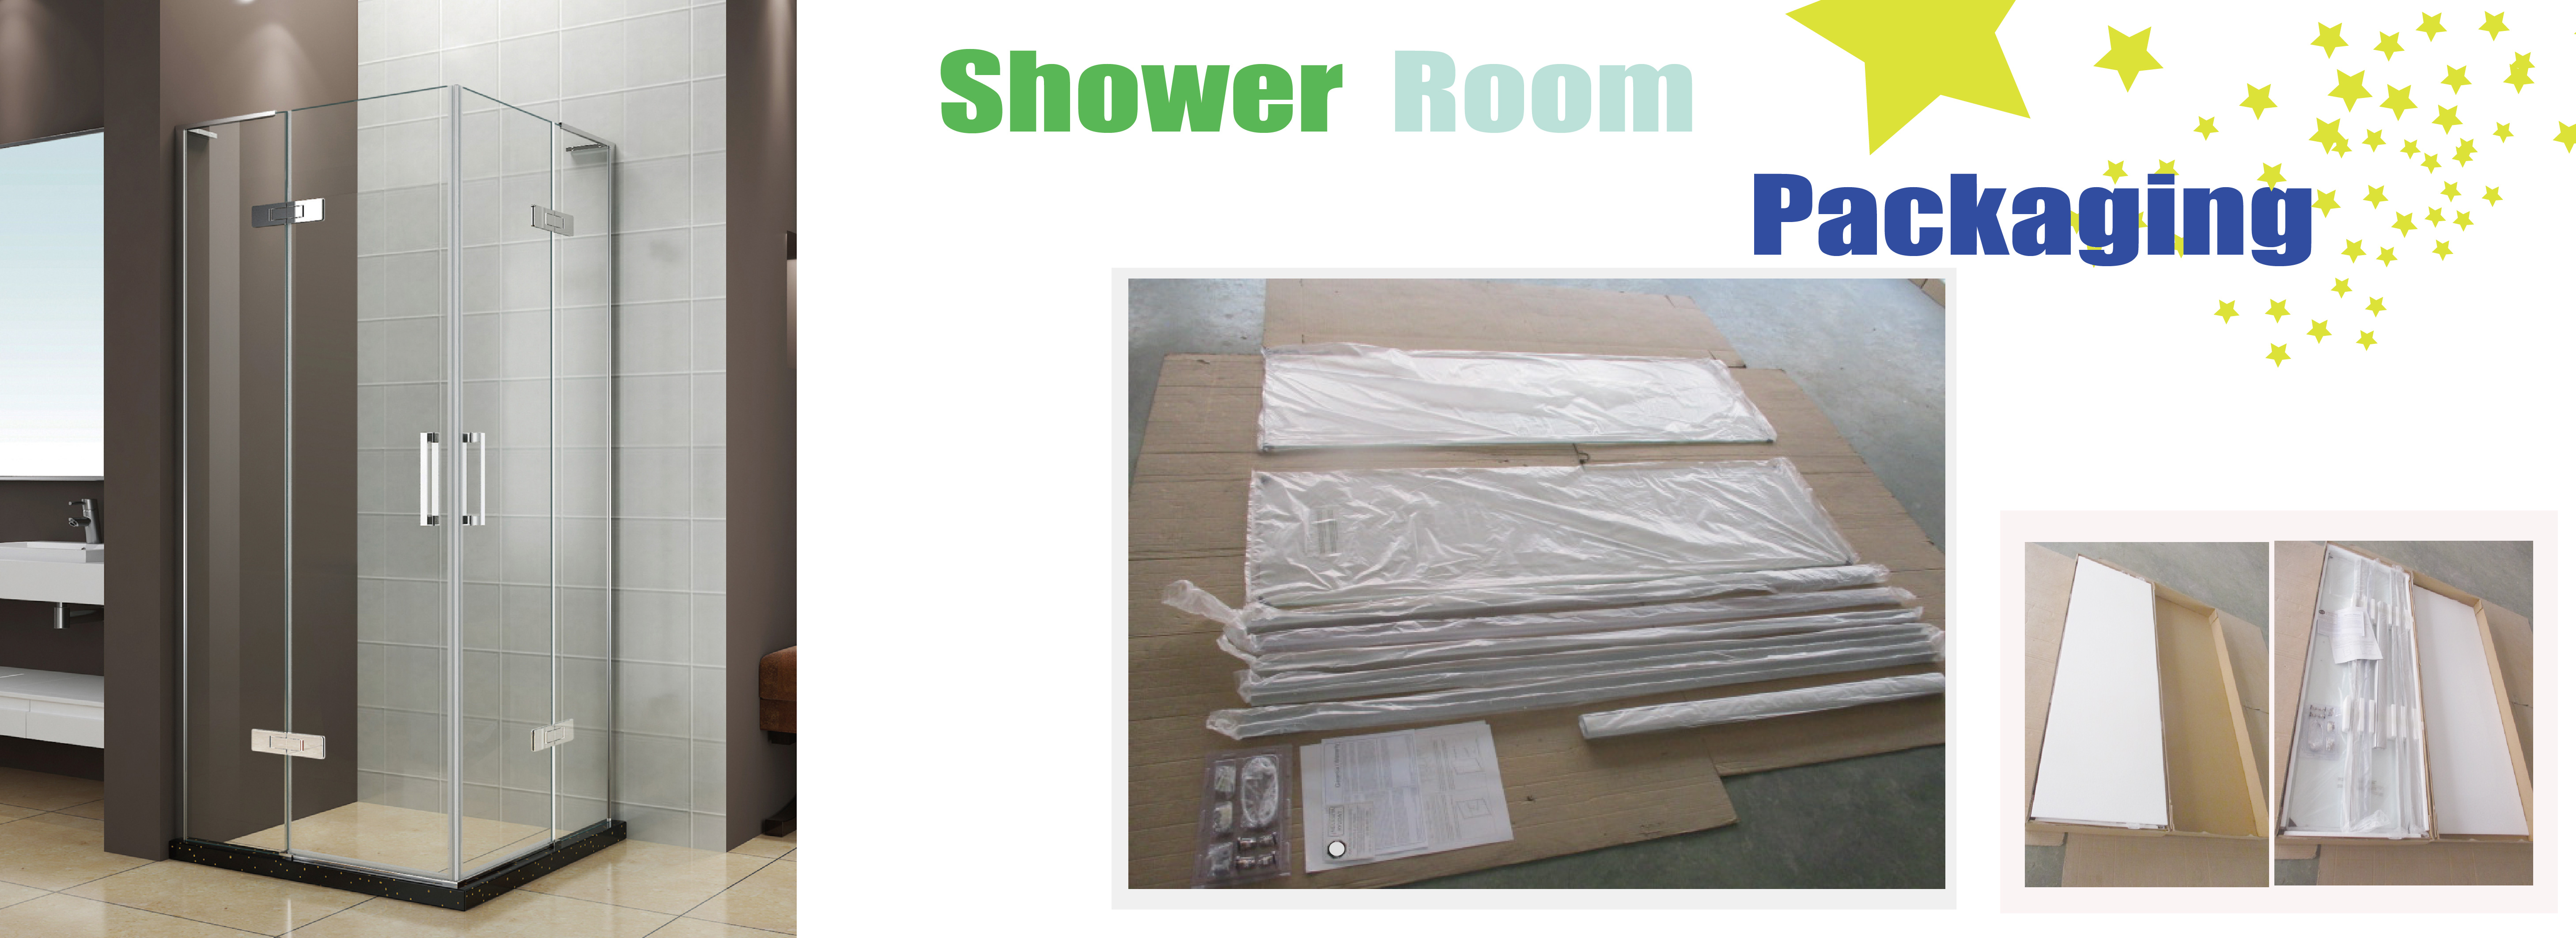 Shower Package Entop Style Package Bathroom Cbainet Led Mirror Shower Room